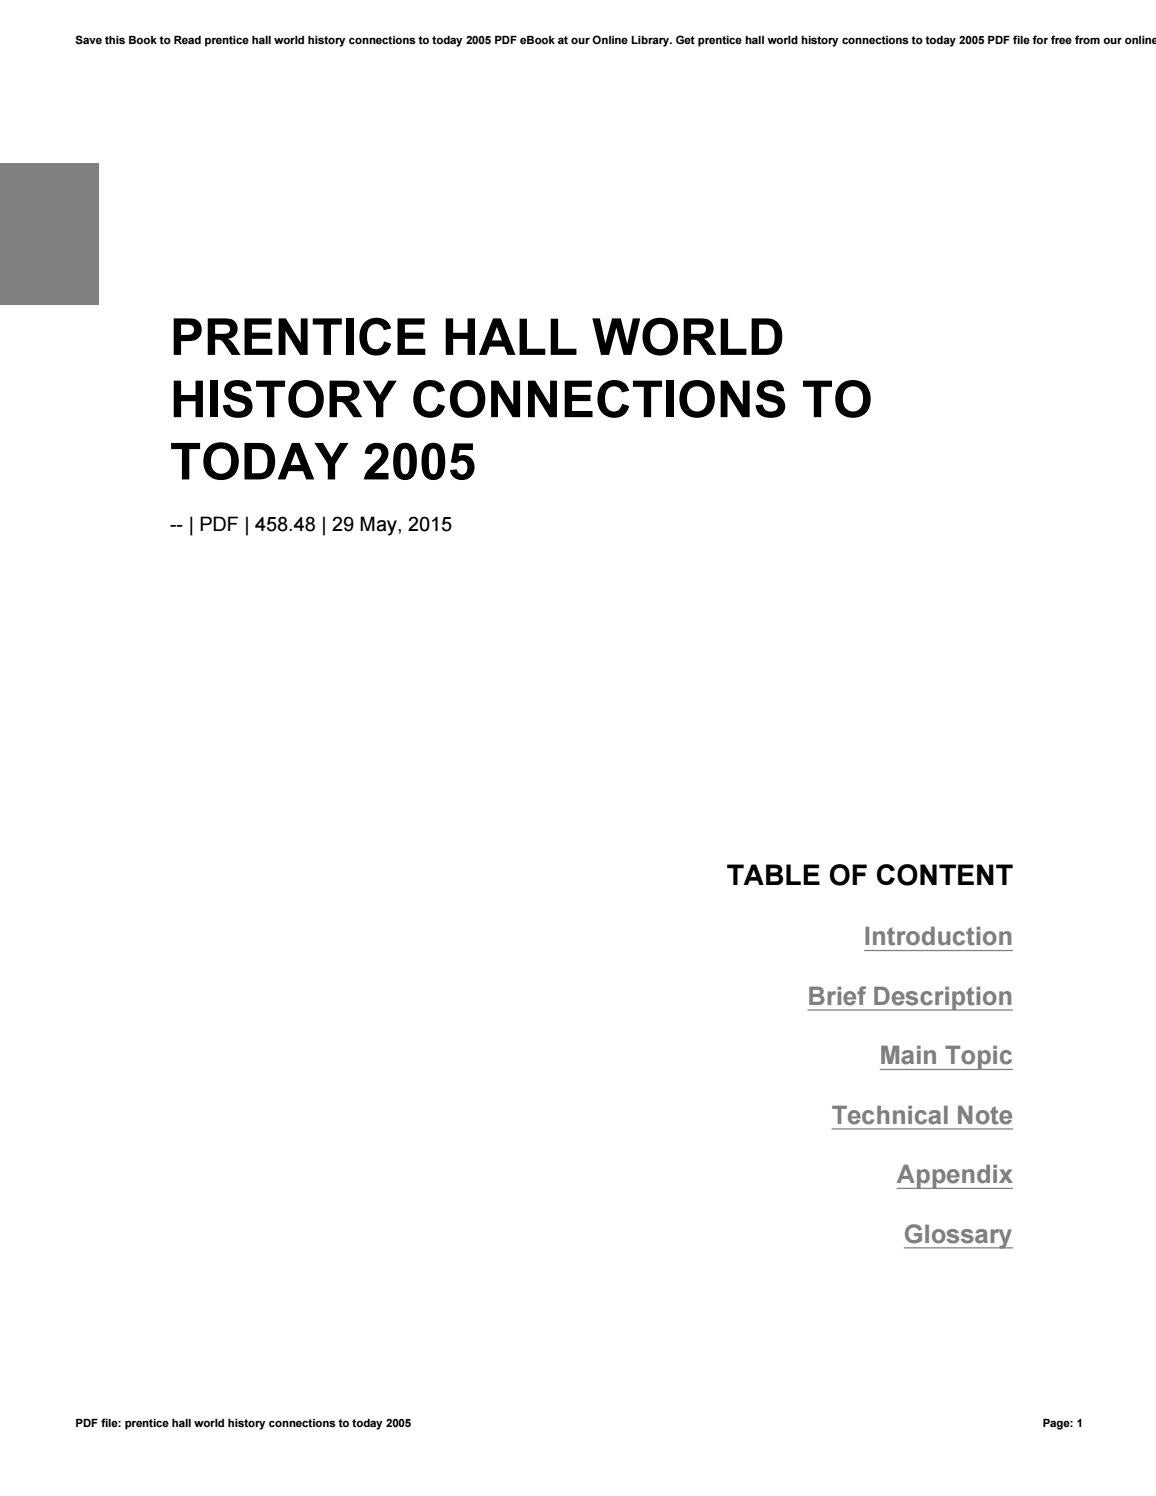 Prentice hall world history connections to today 2005 by